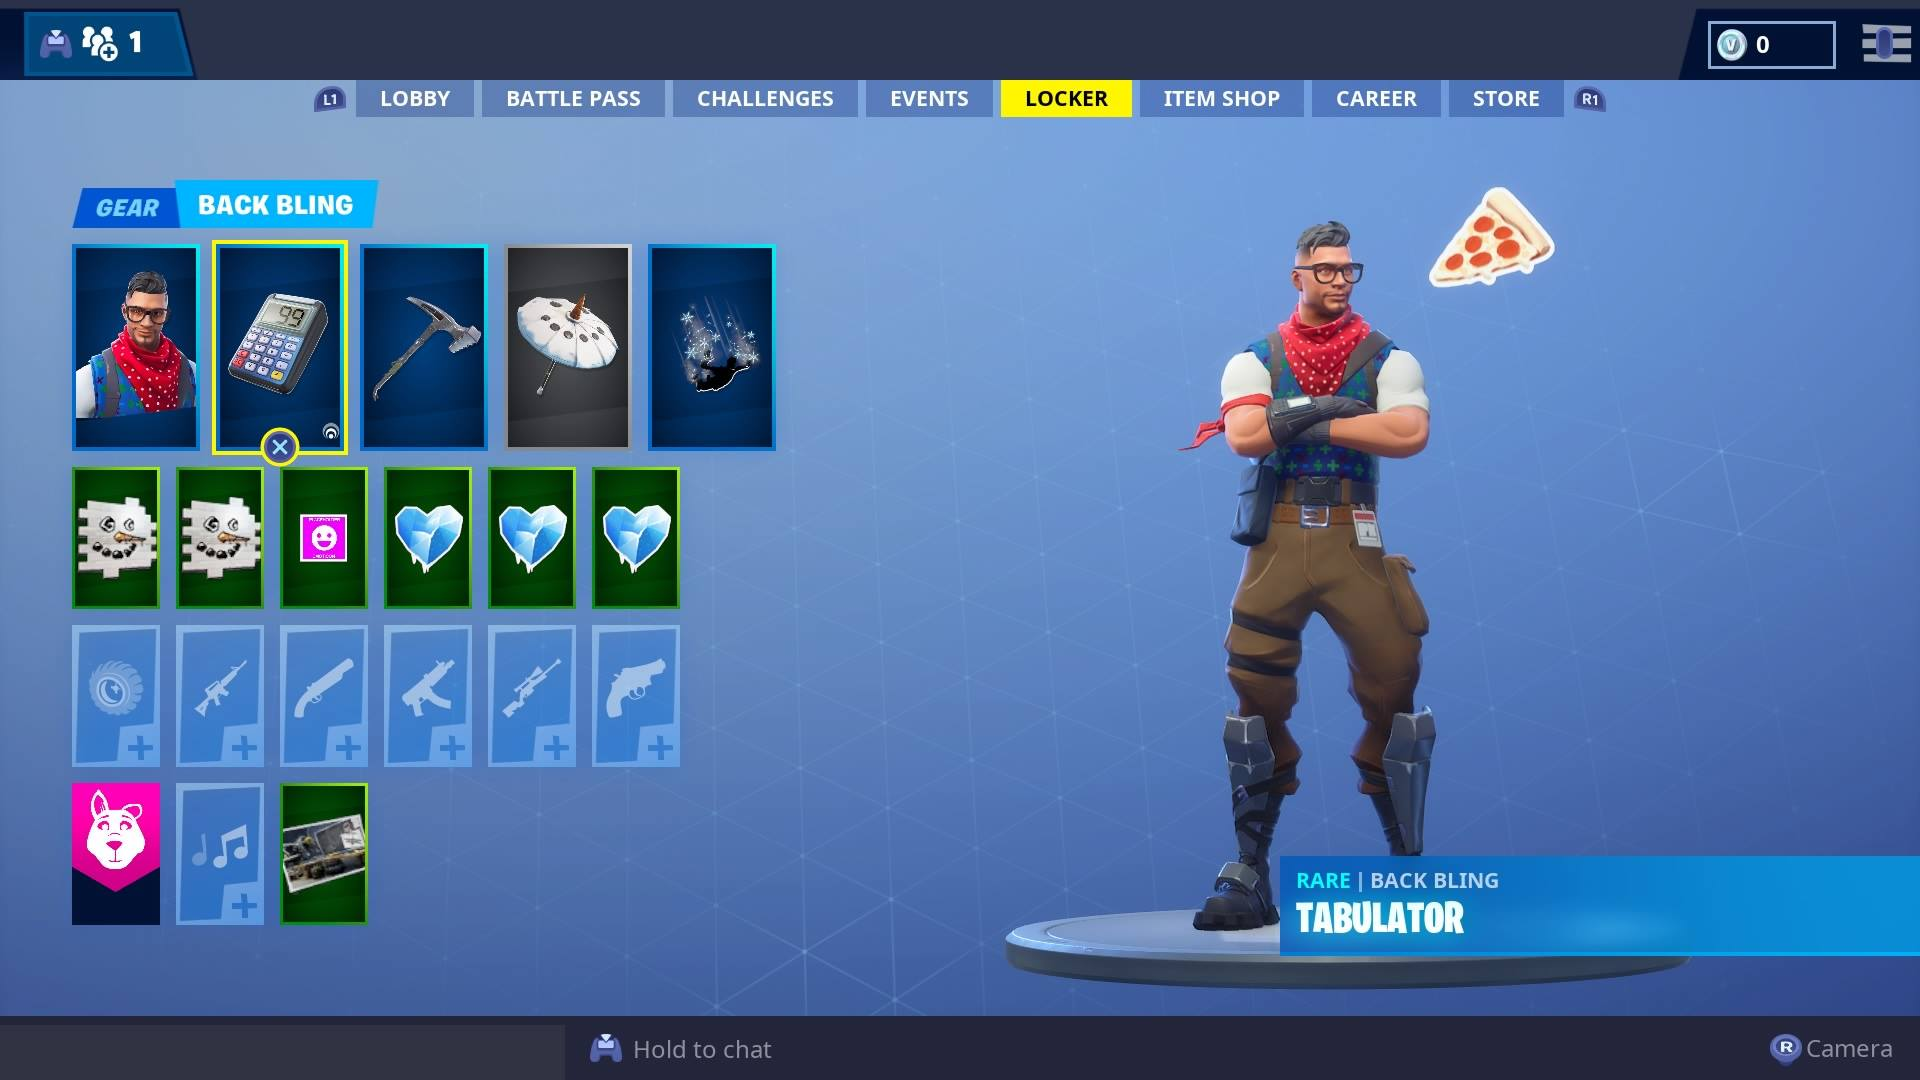 Free Back Bling In Fortnite Playstation Plus Players Can Get A Free Skin Back Bling And Emoticon With The New Fortnite Celebration Pack Dot Esports